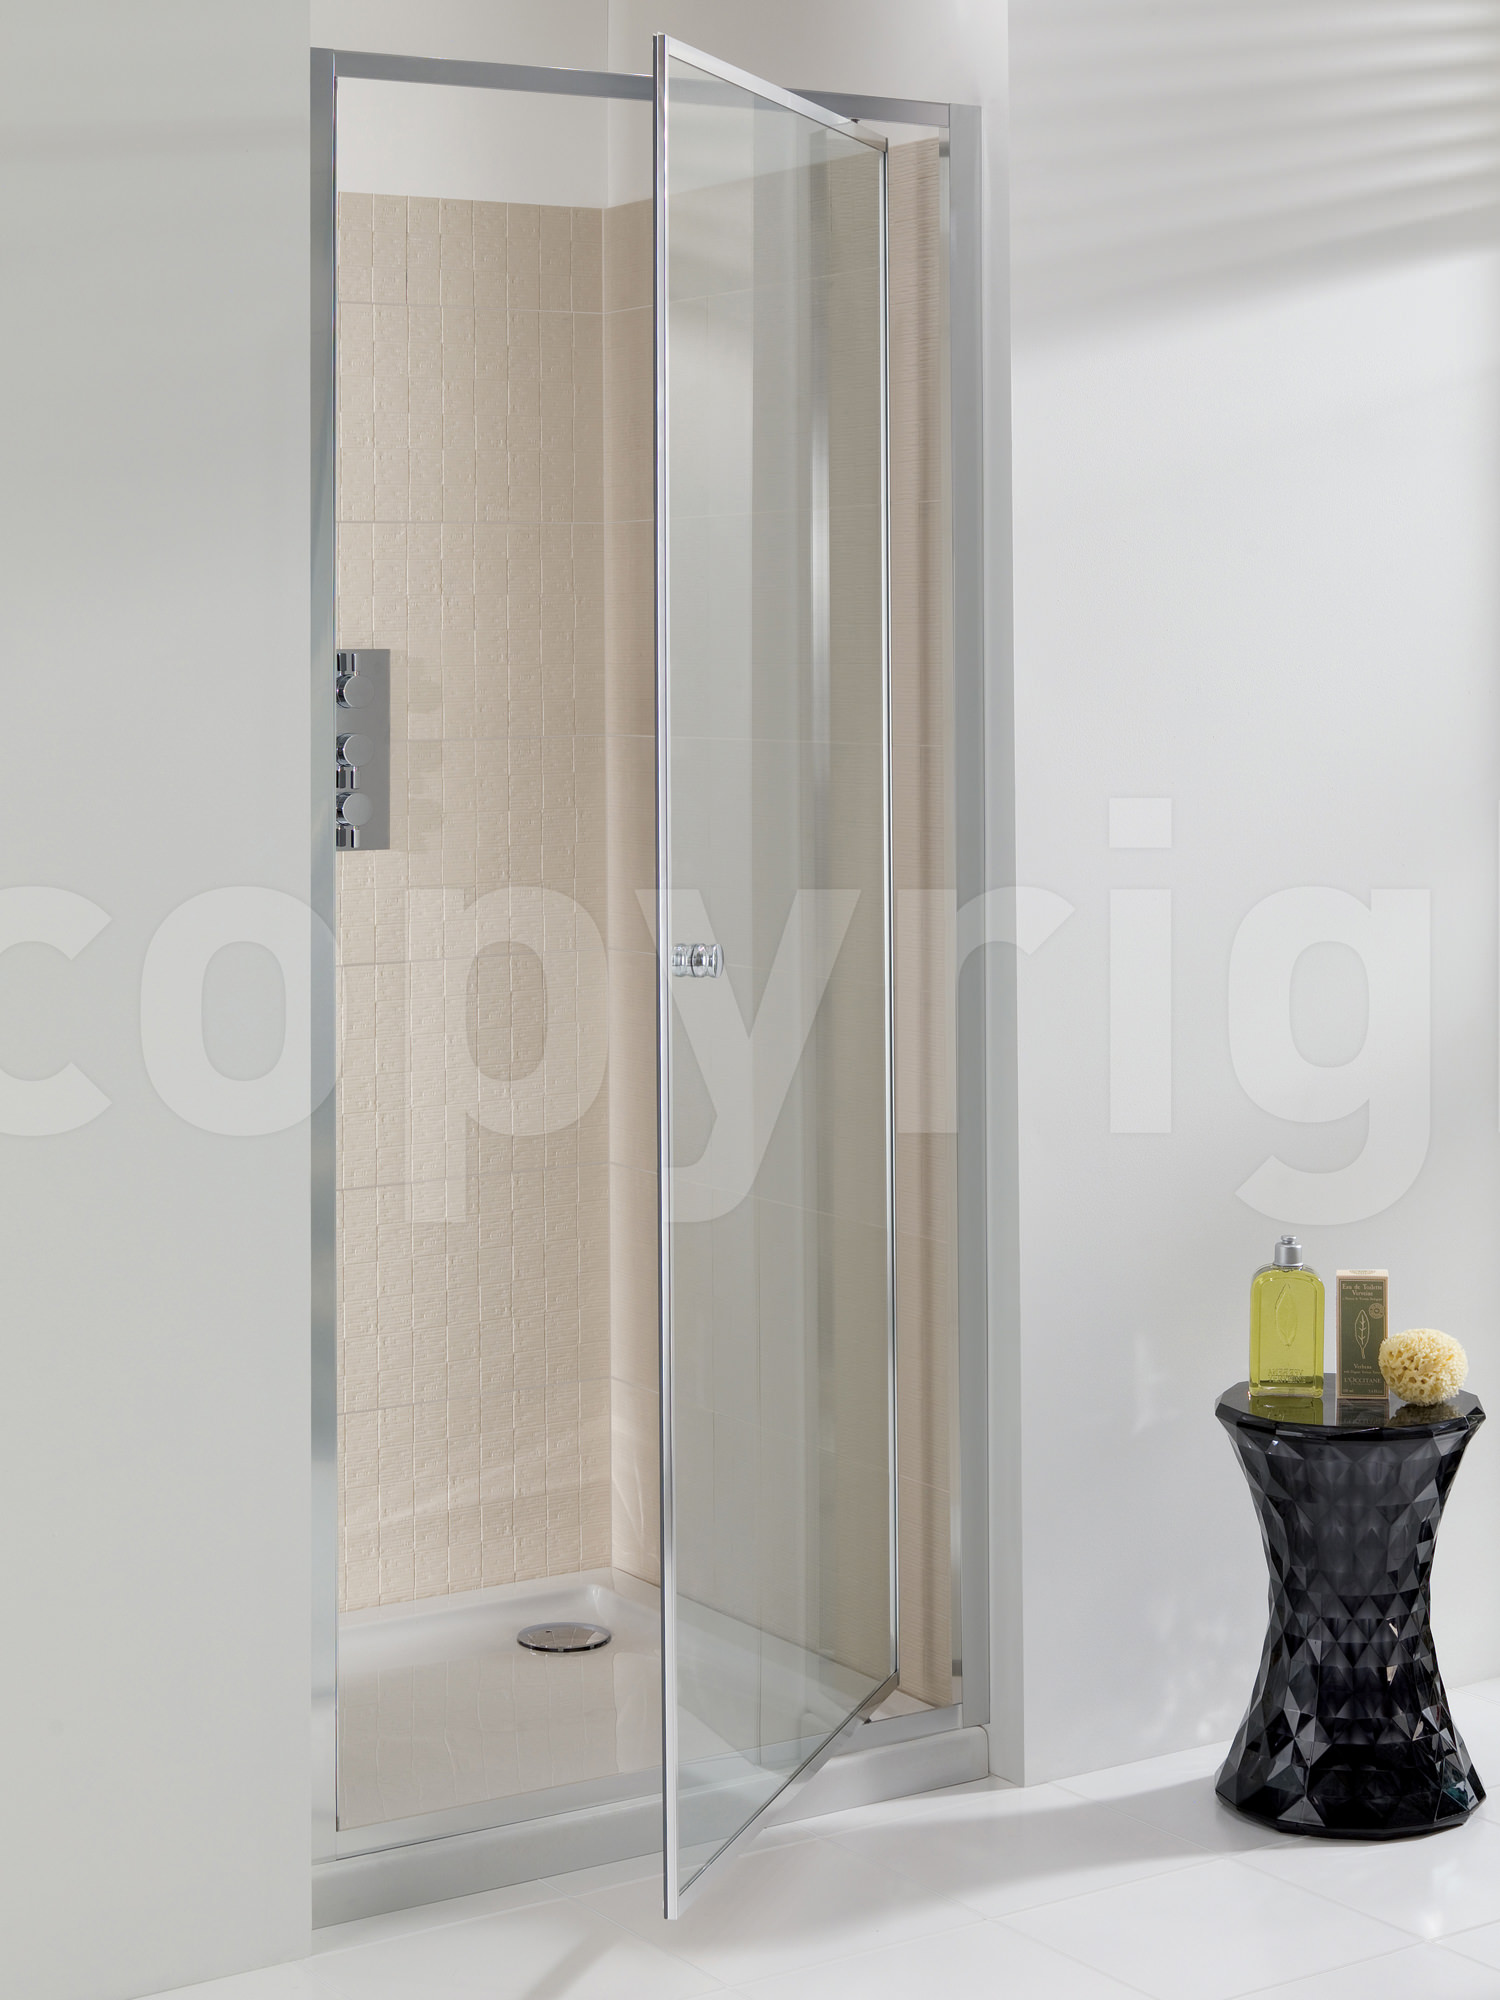 Simpsons edge 900mm pivot shower door for 1800mm high shower door